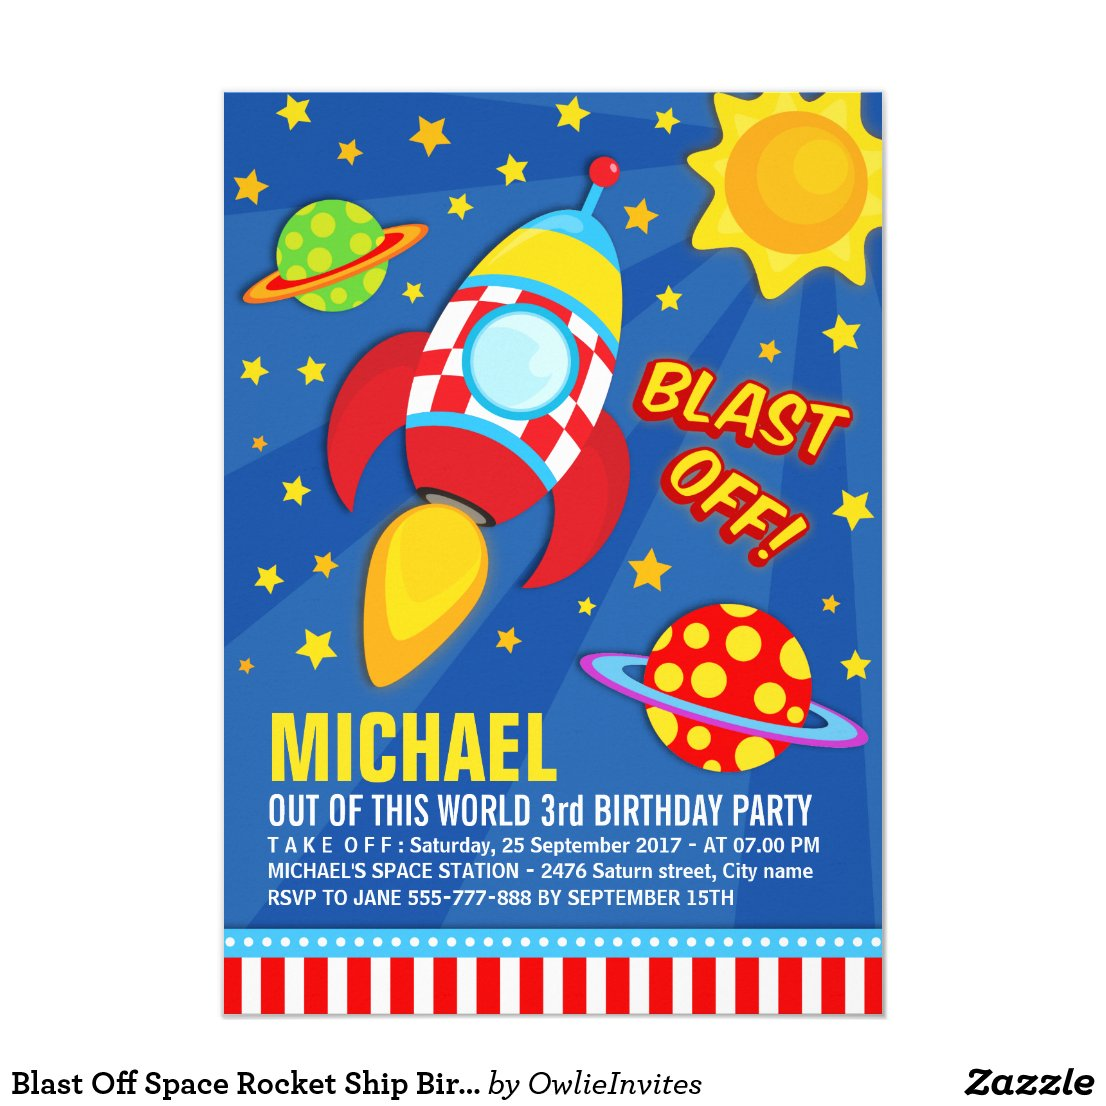 Blast Off Space Rocket Ship Birthday Invitation